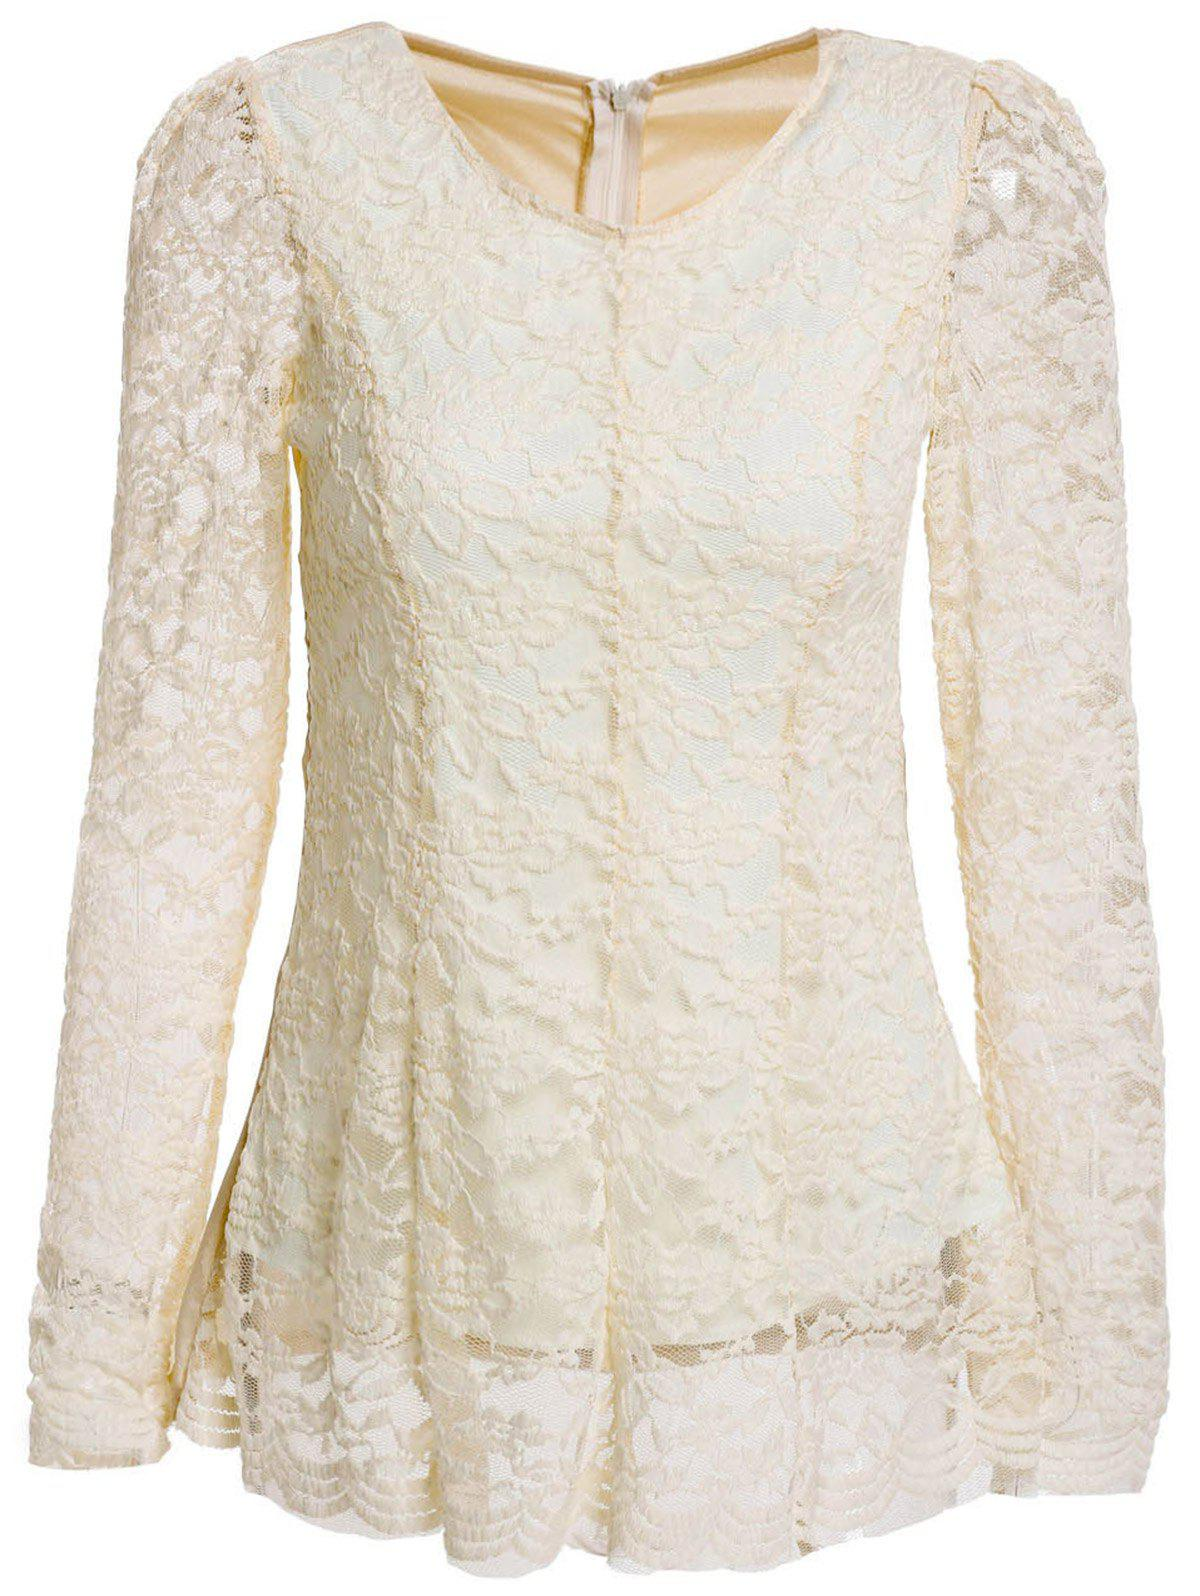 Women's Graceful Flouncing Floral Embroidery Long Sleeves Lace Blouse - APRICOT ONE SIZE